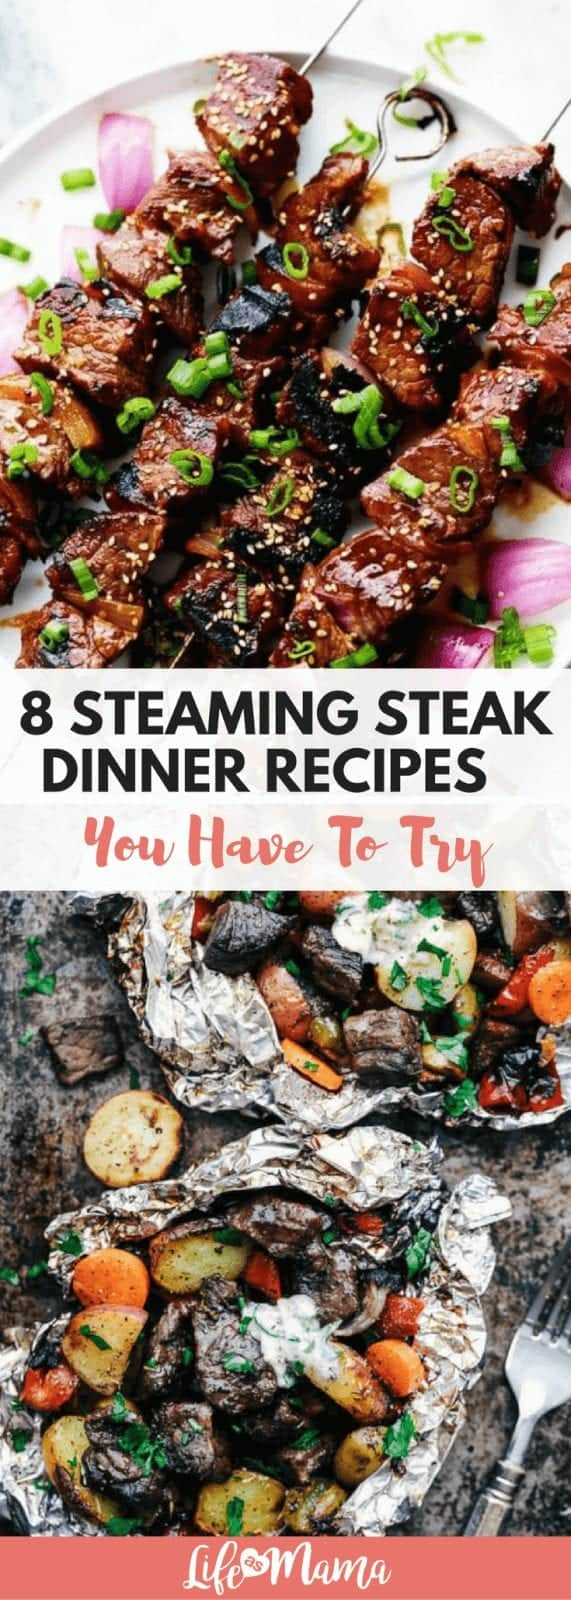 steak dinner recipes